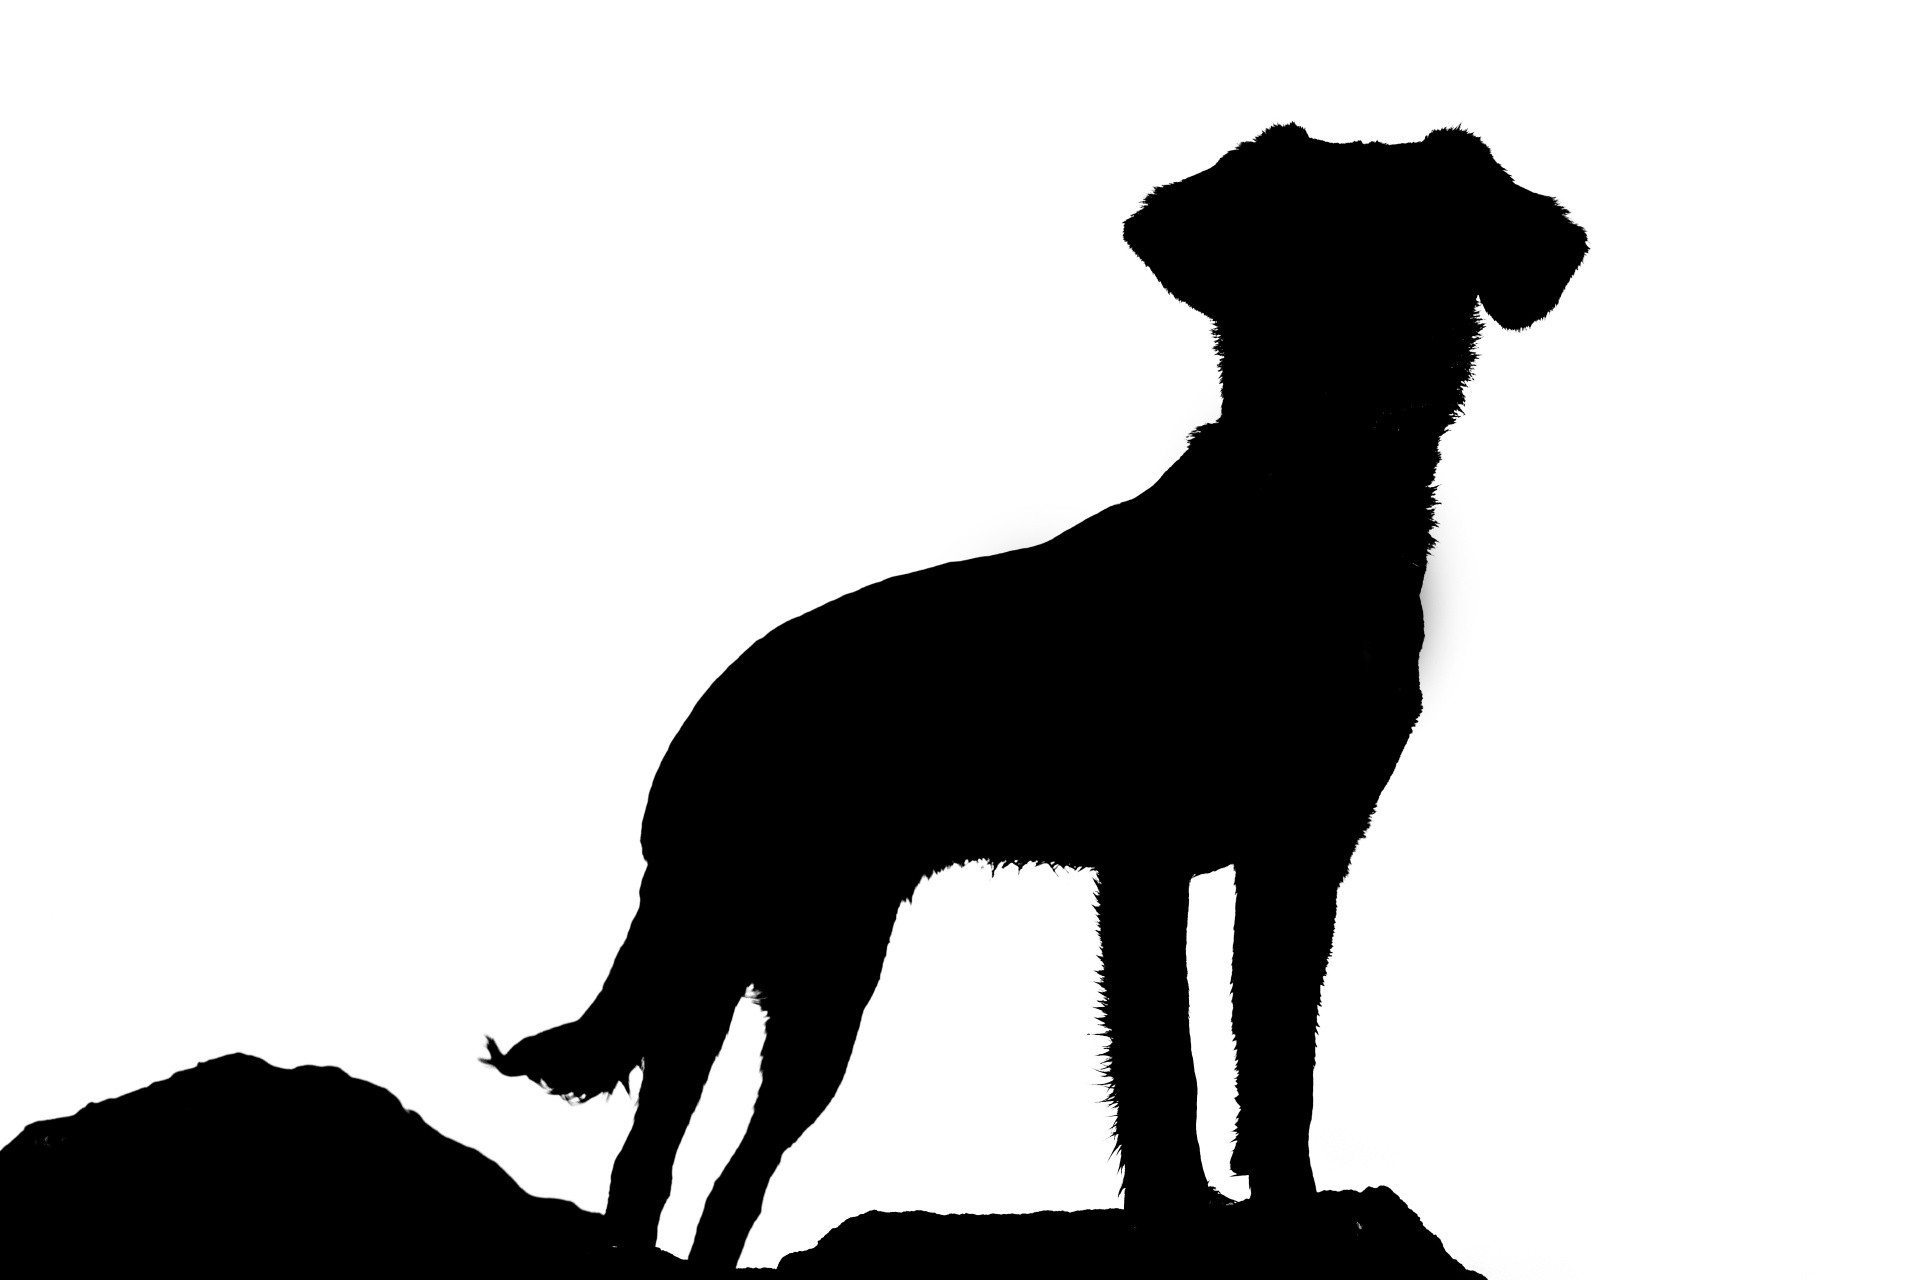 silhouette-of-dog-1484326255whv